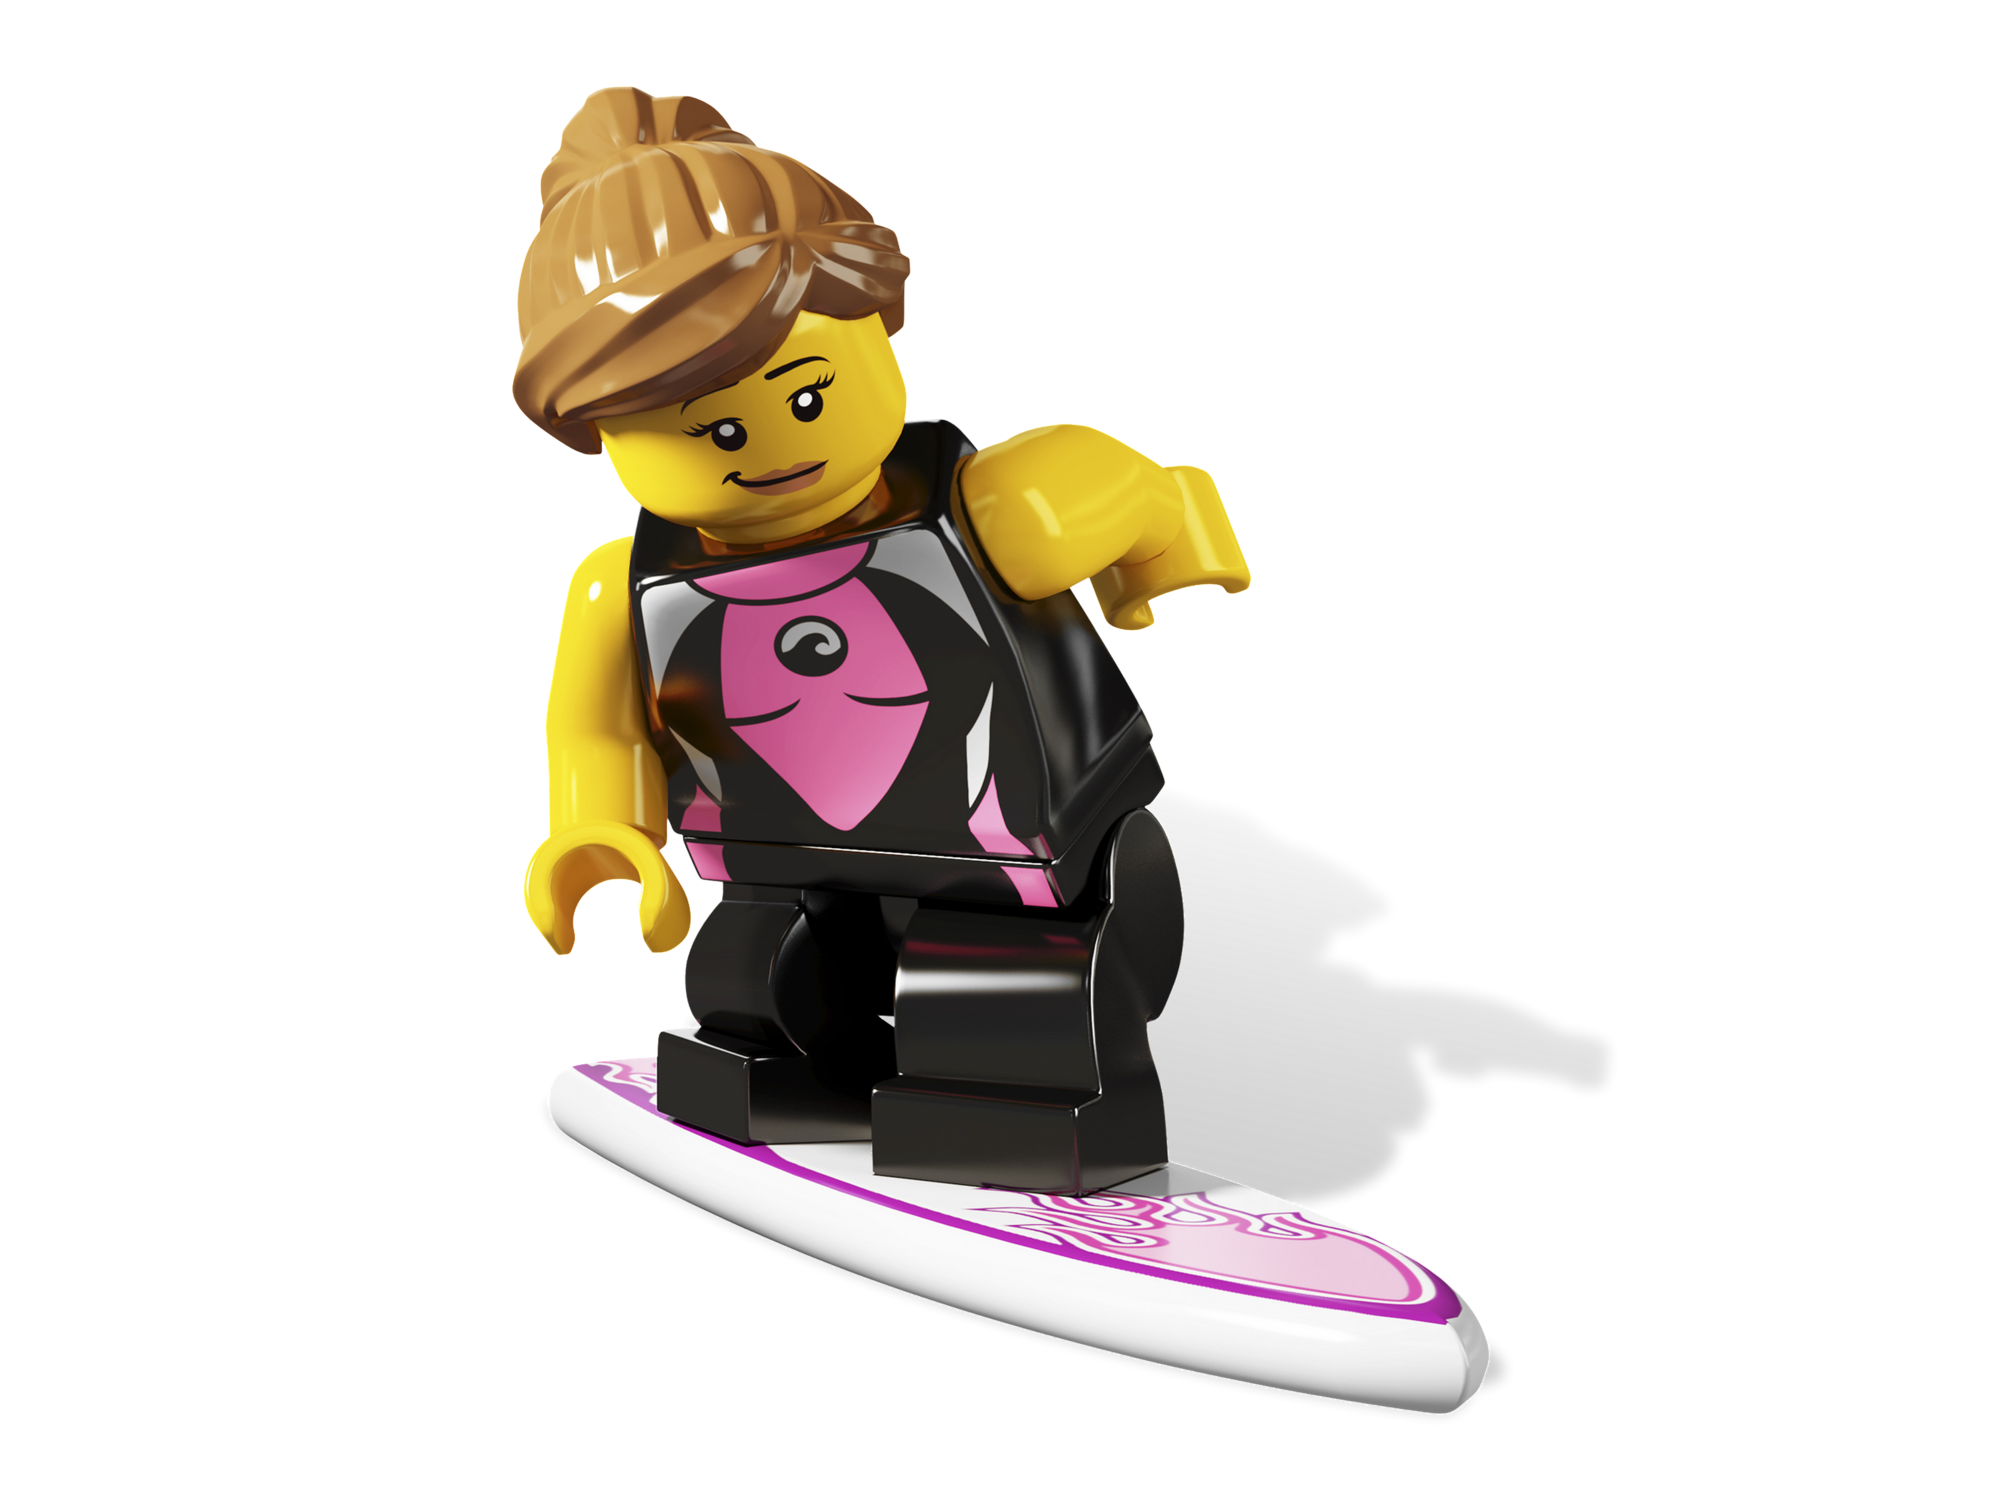 lego minifigure png - photo #21